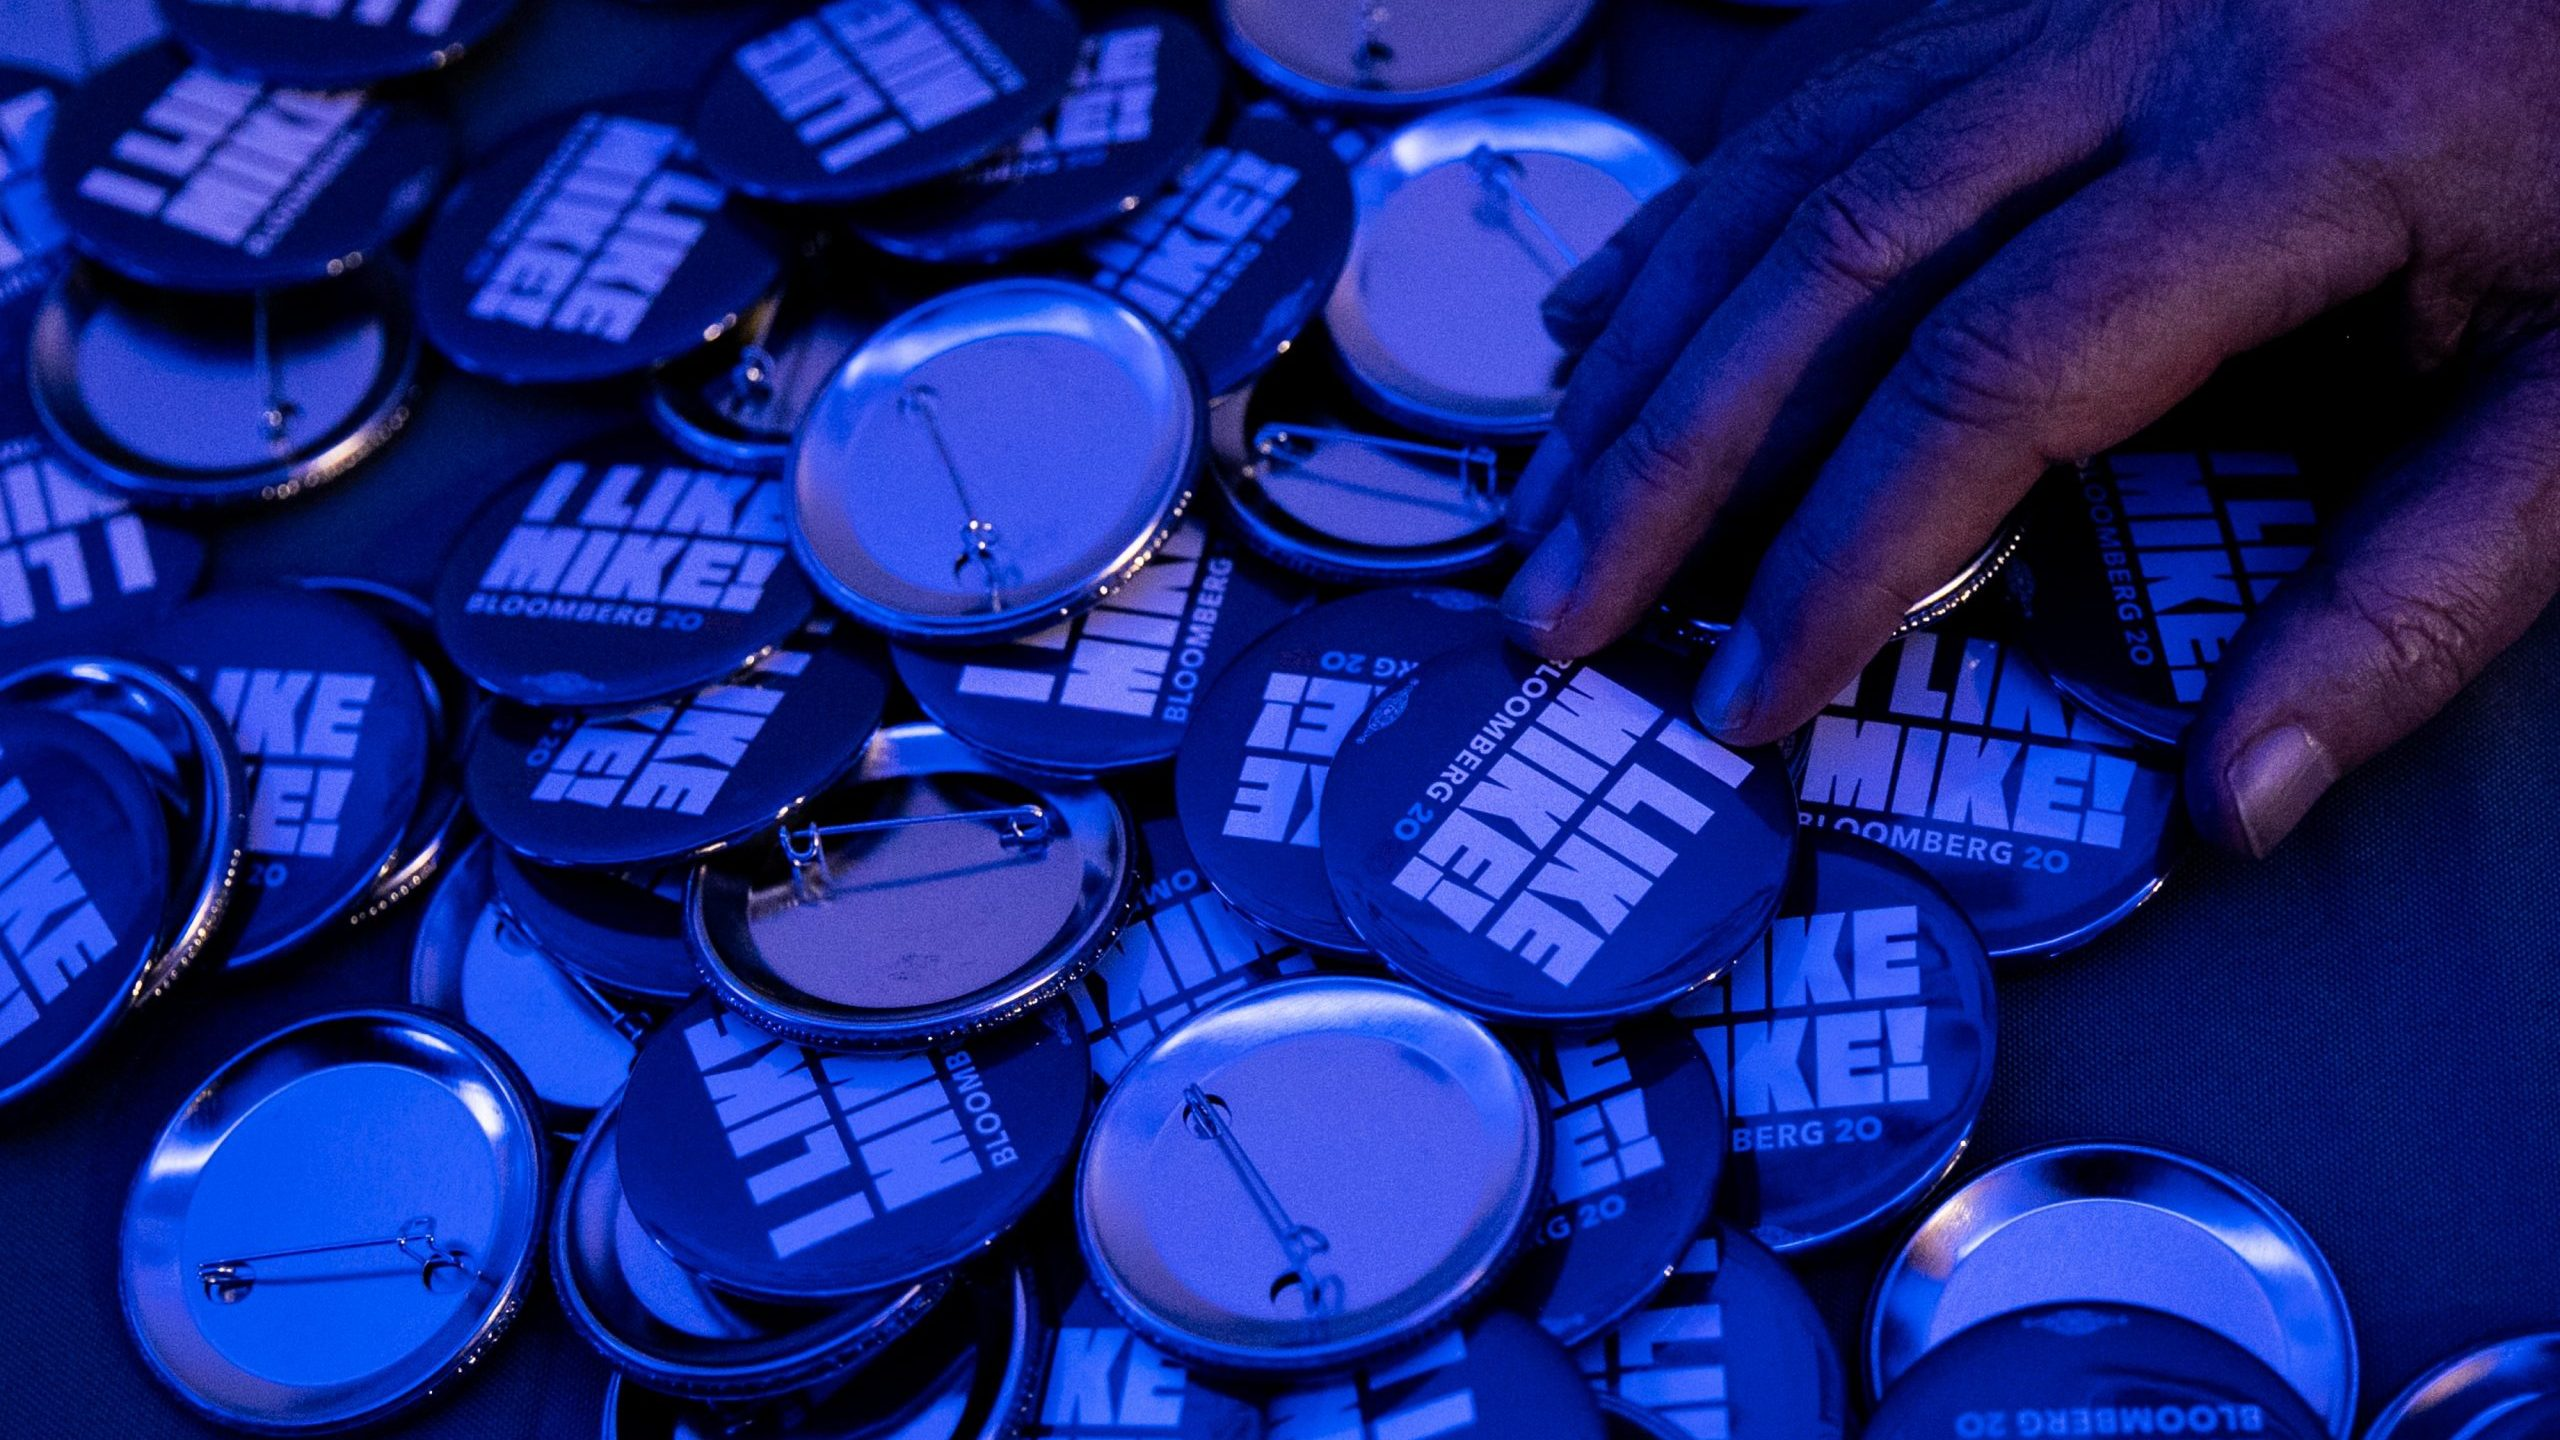 Mike Bloomberg 2020 campaign pins are seen during a debate watch party at Brooklyn field office on Feb. 19, 2020, in New York City. (Credit: Jeenah Moon/Getty Images)